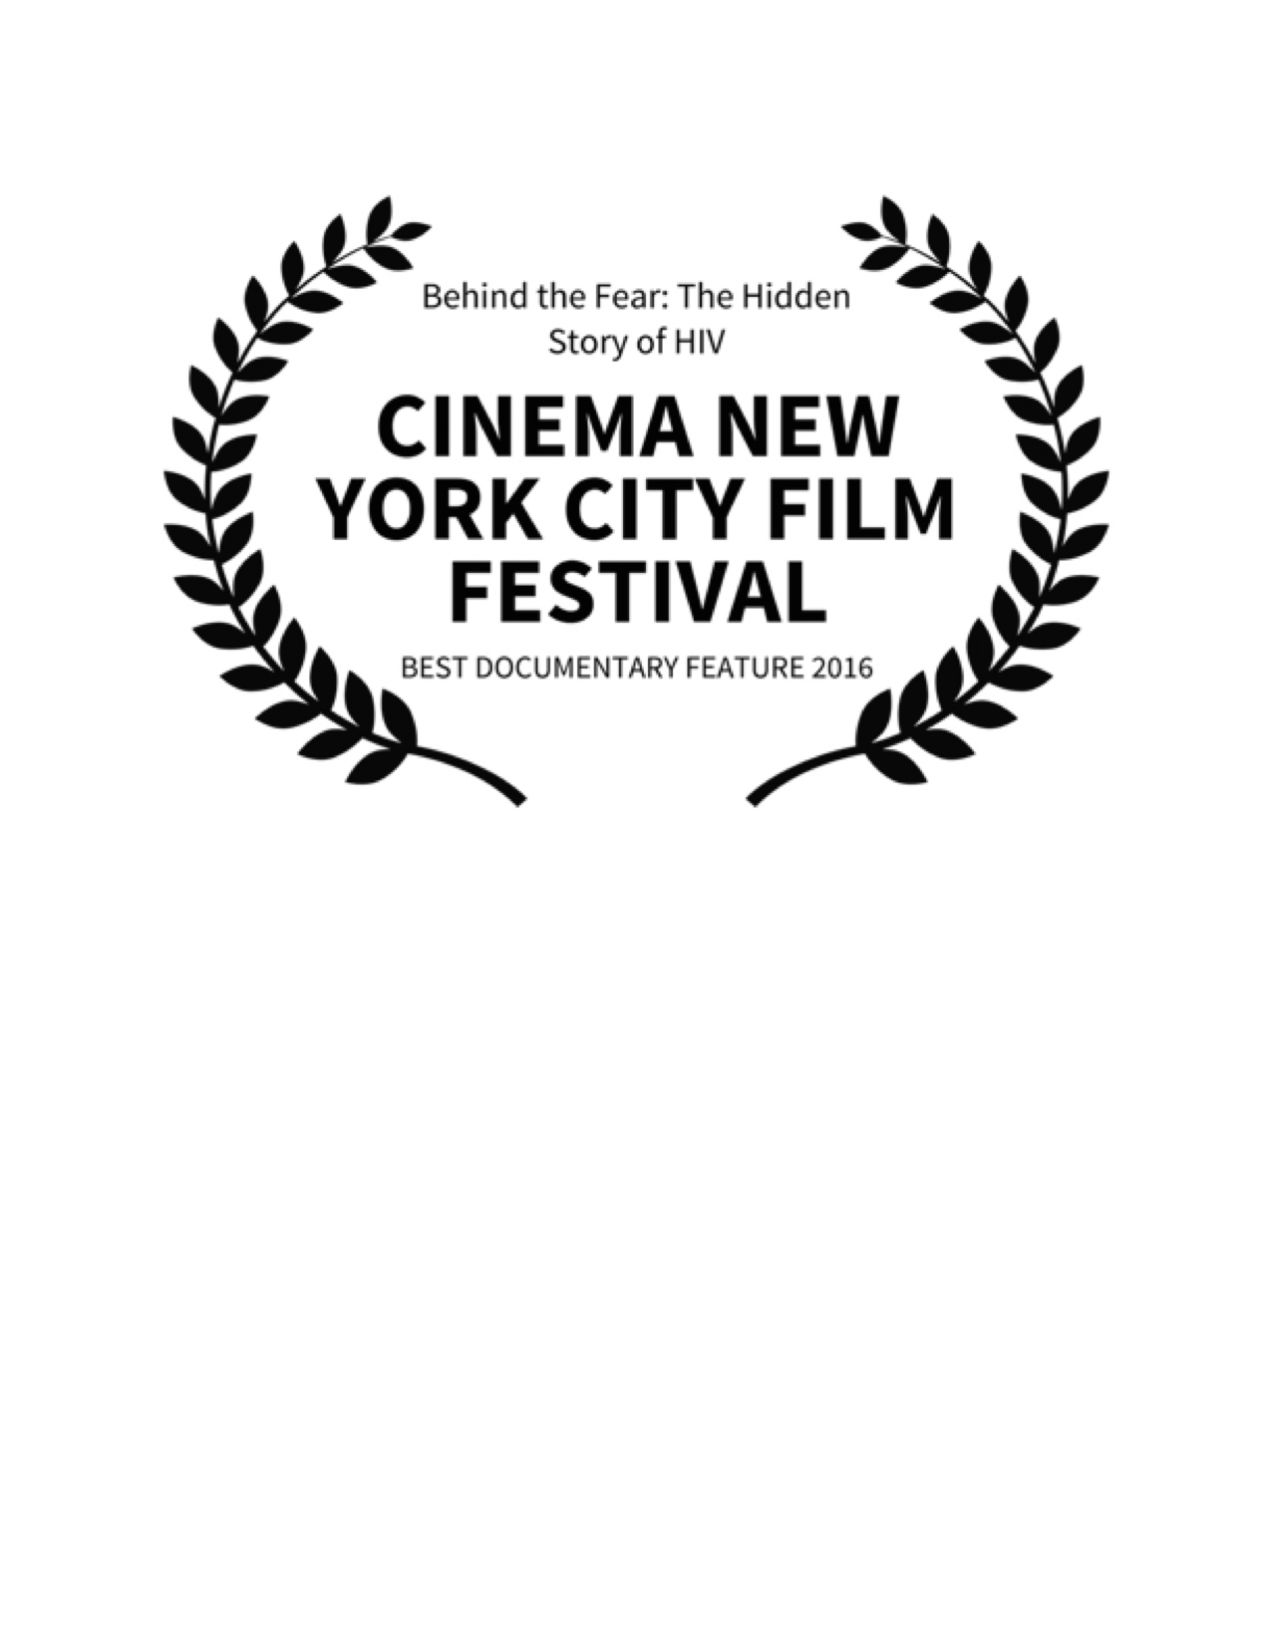 Best Documentary, Cinema New York City